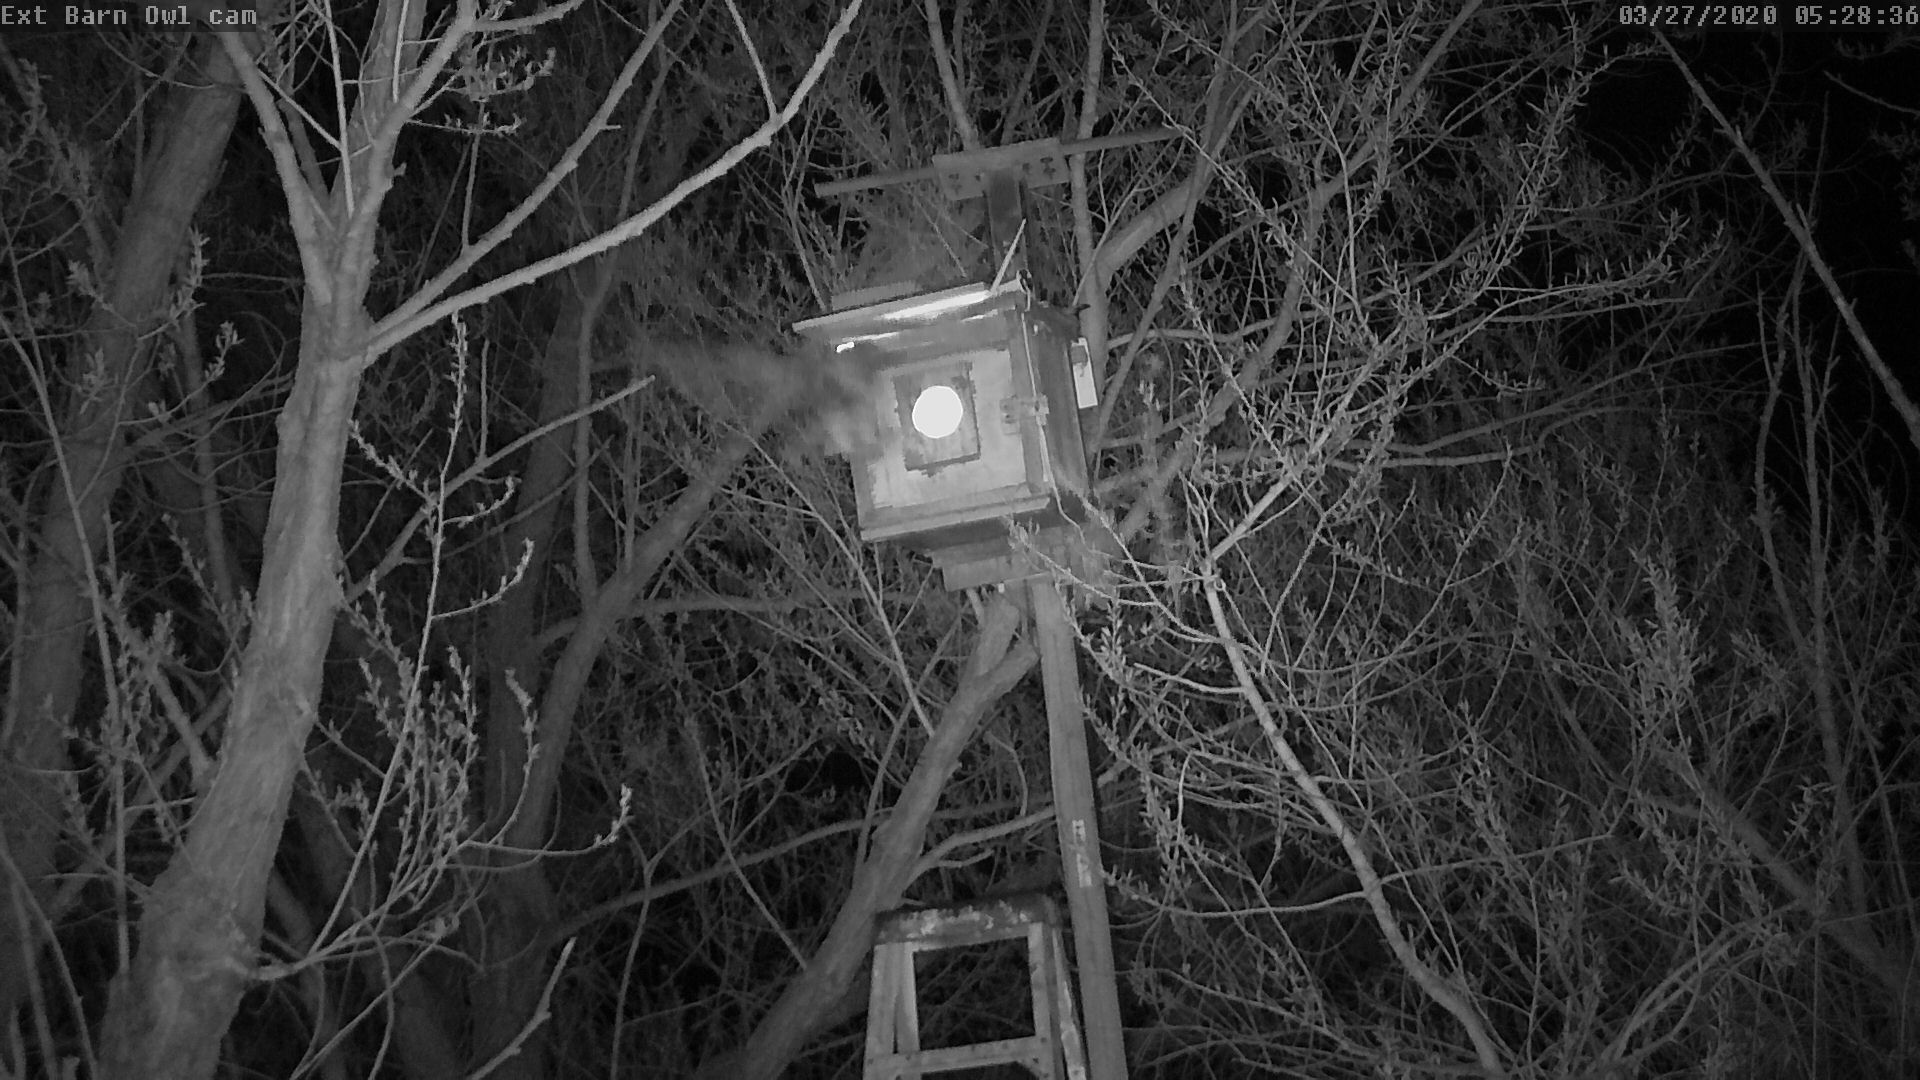 External Barn Owl Nest Cam